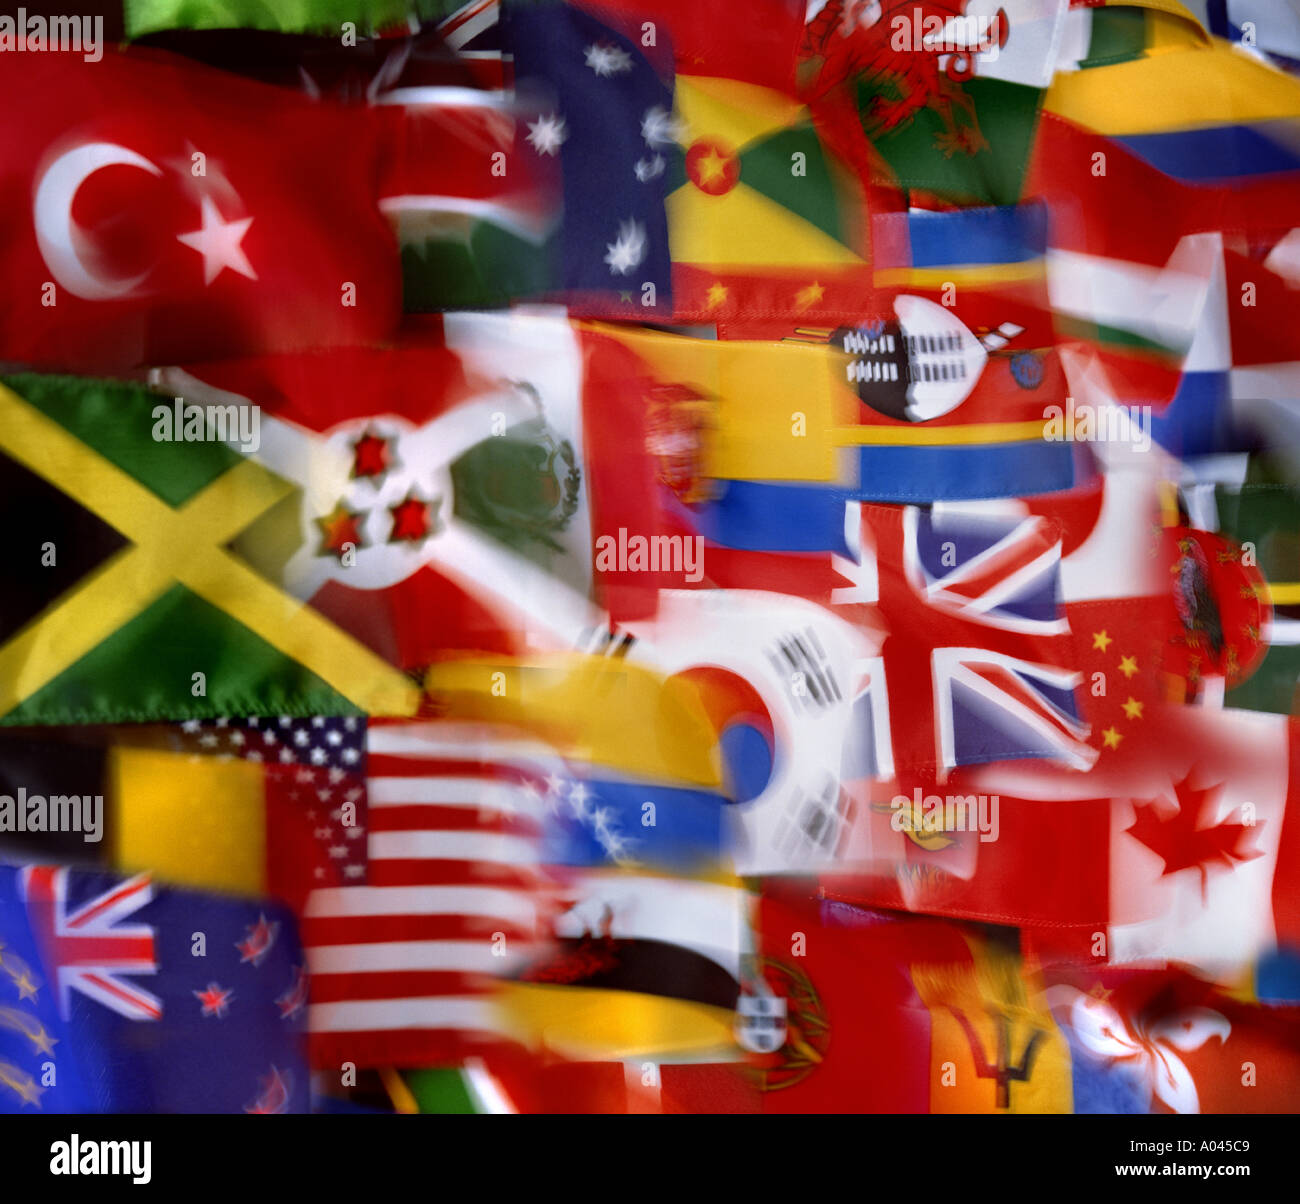 Flags of the World National Flags montage Global Village  Communication - Stock Image